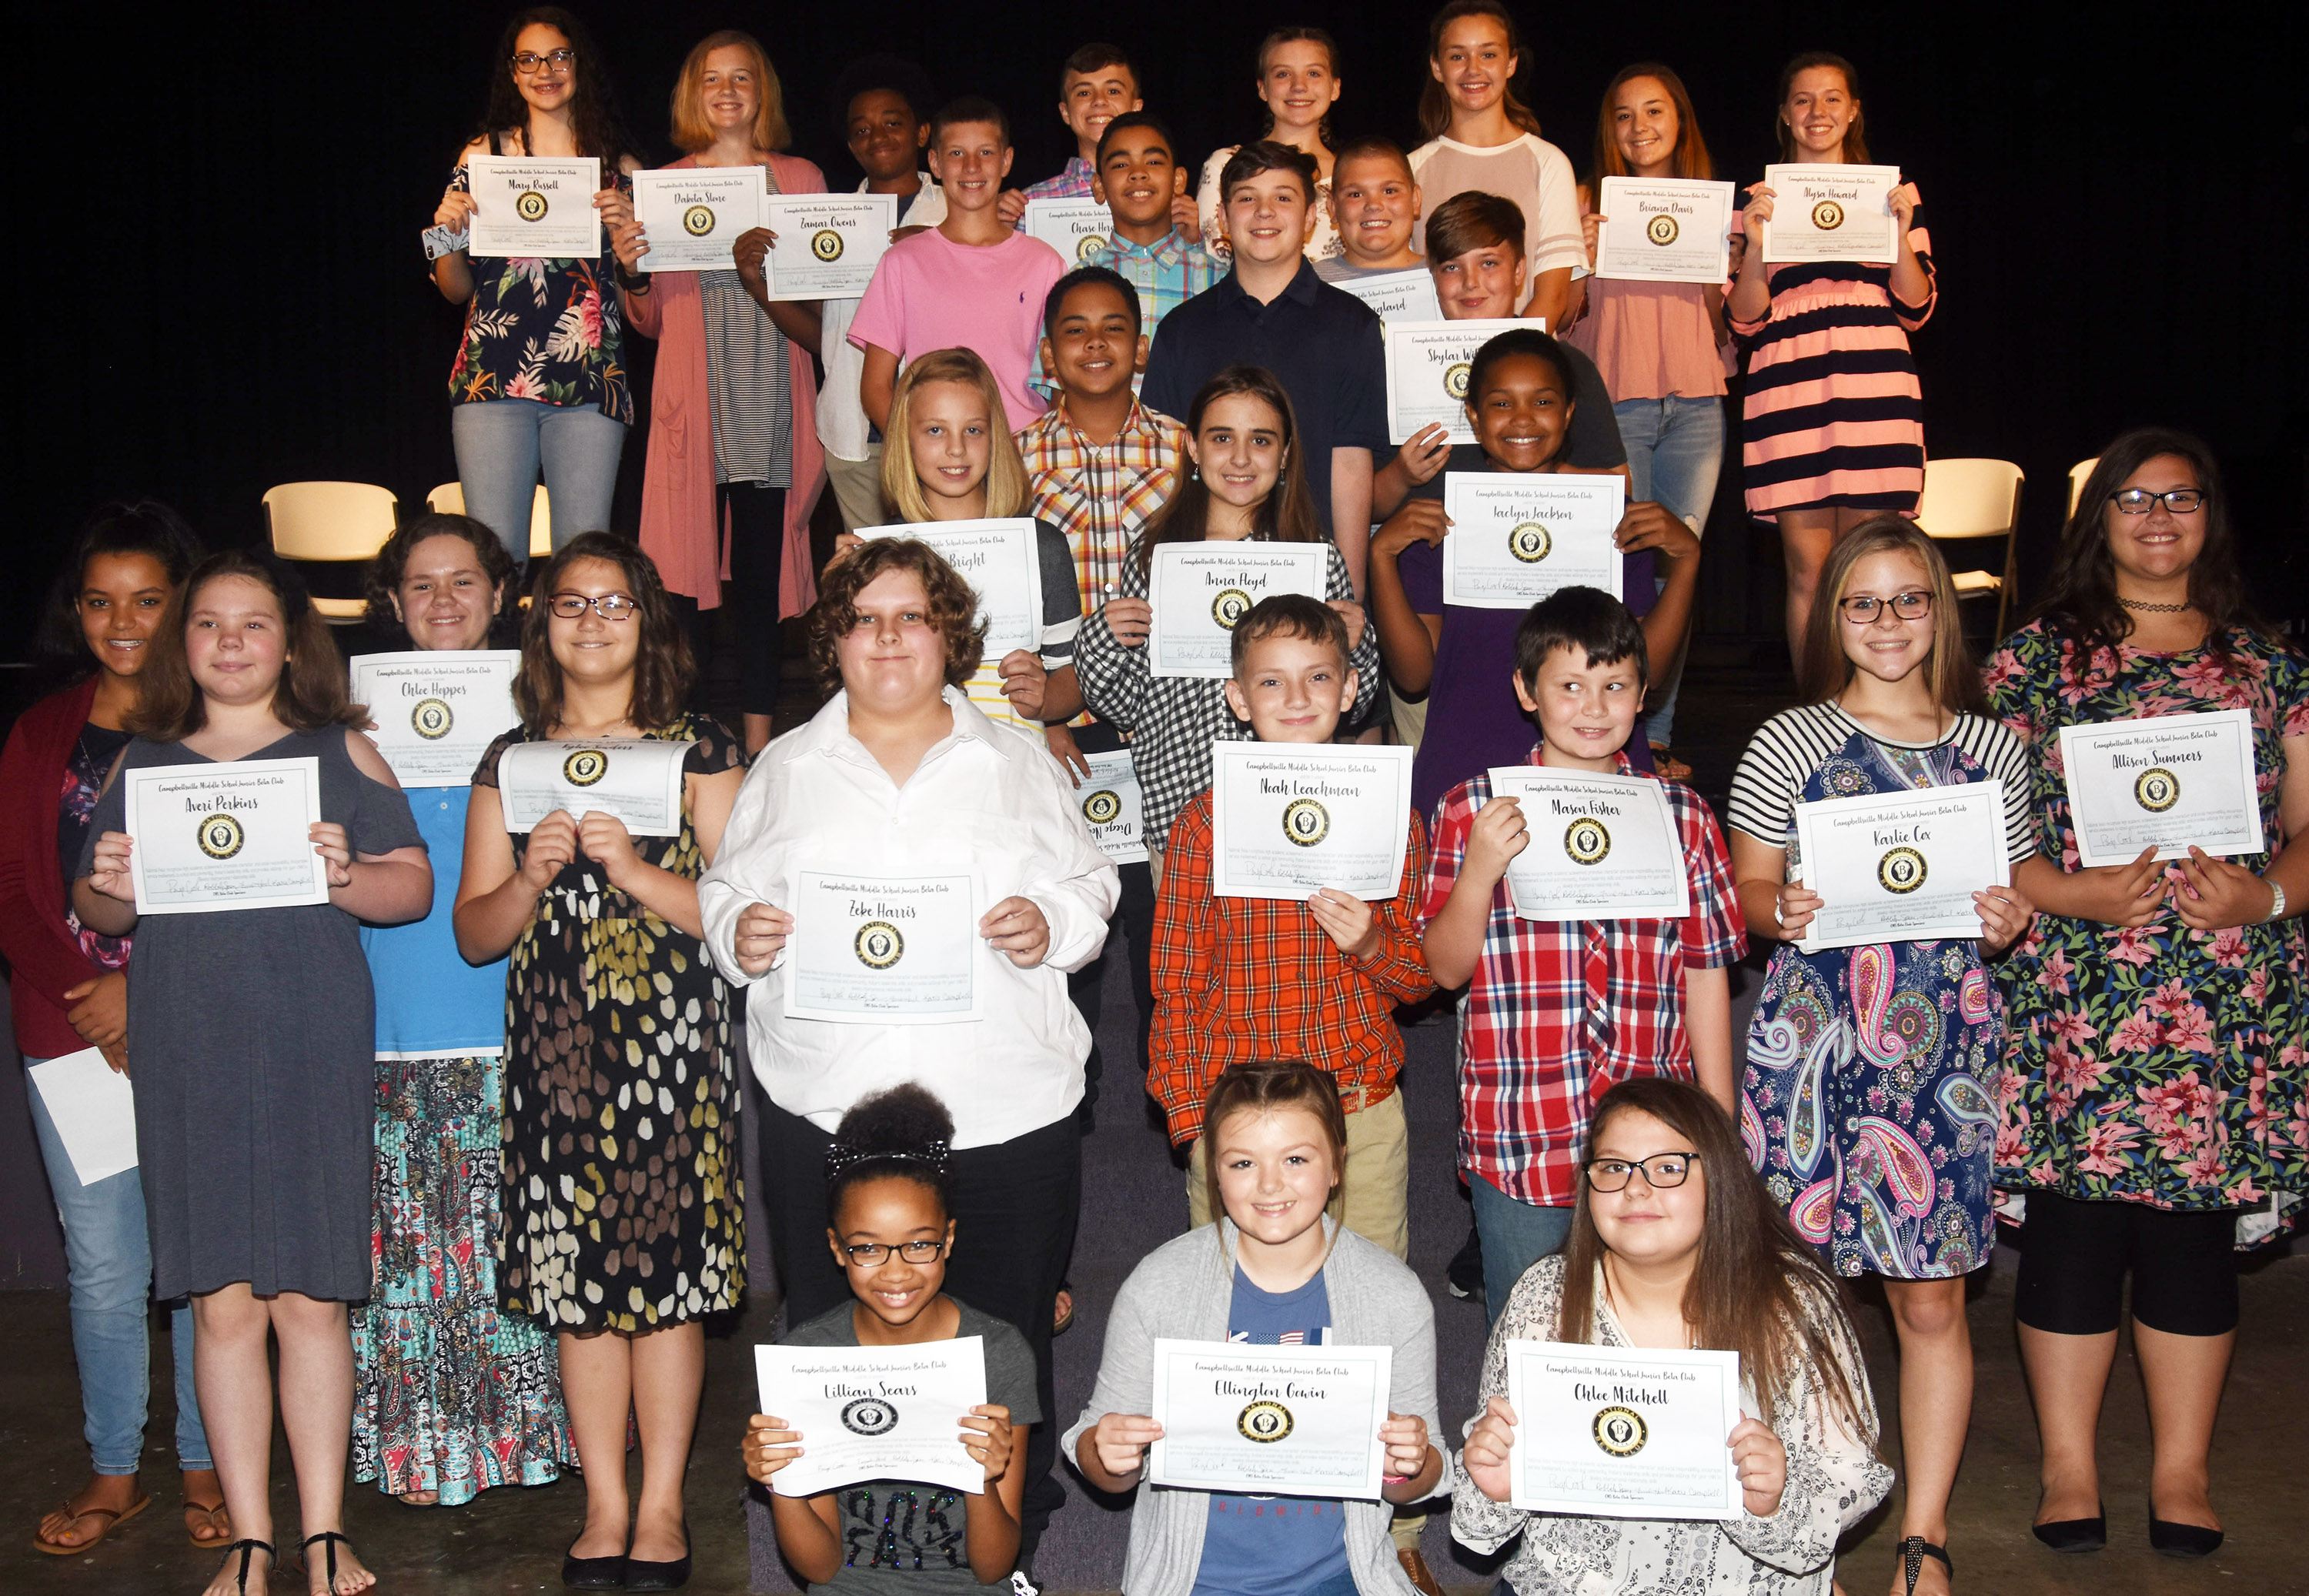 CMS National Junior Beta Club recently inducted more than 30 new members. Attending the ceremony are new and current members. From left, front, are sixth-grader Lillian Sears and seventh-graders Ellington Gowin and Chloe Mitchell. Second row, seventh-grader Gracie Taylor, sixth-graders Averi Perkins, Chloe Hoppes, Kylee Sowders, Zeke Harris, Noah Leachman and Mason Fisher and seventh-graders Karlie Cox and Allison Sumners. Third row, seventh-grader Gabby Bright and sixth-graders Anna Floyd and Jaclyn Jackson. Fourth row, seventh-grader Diego Noyola and sixth-graders Andrew Mardis and Skylar Wilhoite. Back, eighth-graders Mary Russell, Dakota Slone and Zamar Owens, sixth-grader Rowan Petett, eighth-grader Chase Hord, sixth-grader Gabriel Noyola, eighth-grader Mikaela Scharbrough, sixth-grader Logan England and eighth-graders Haylee Allen, Bri Davis and Alysa Howard.